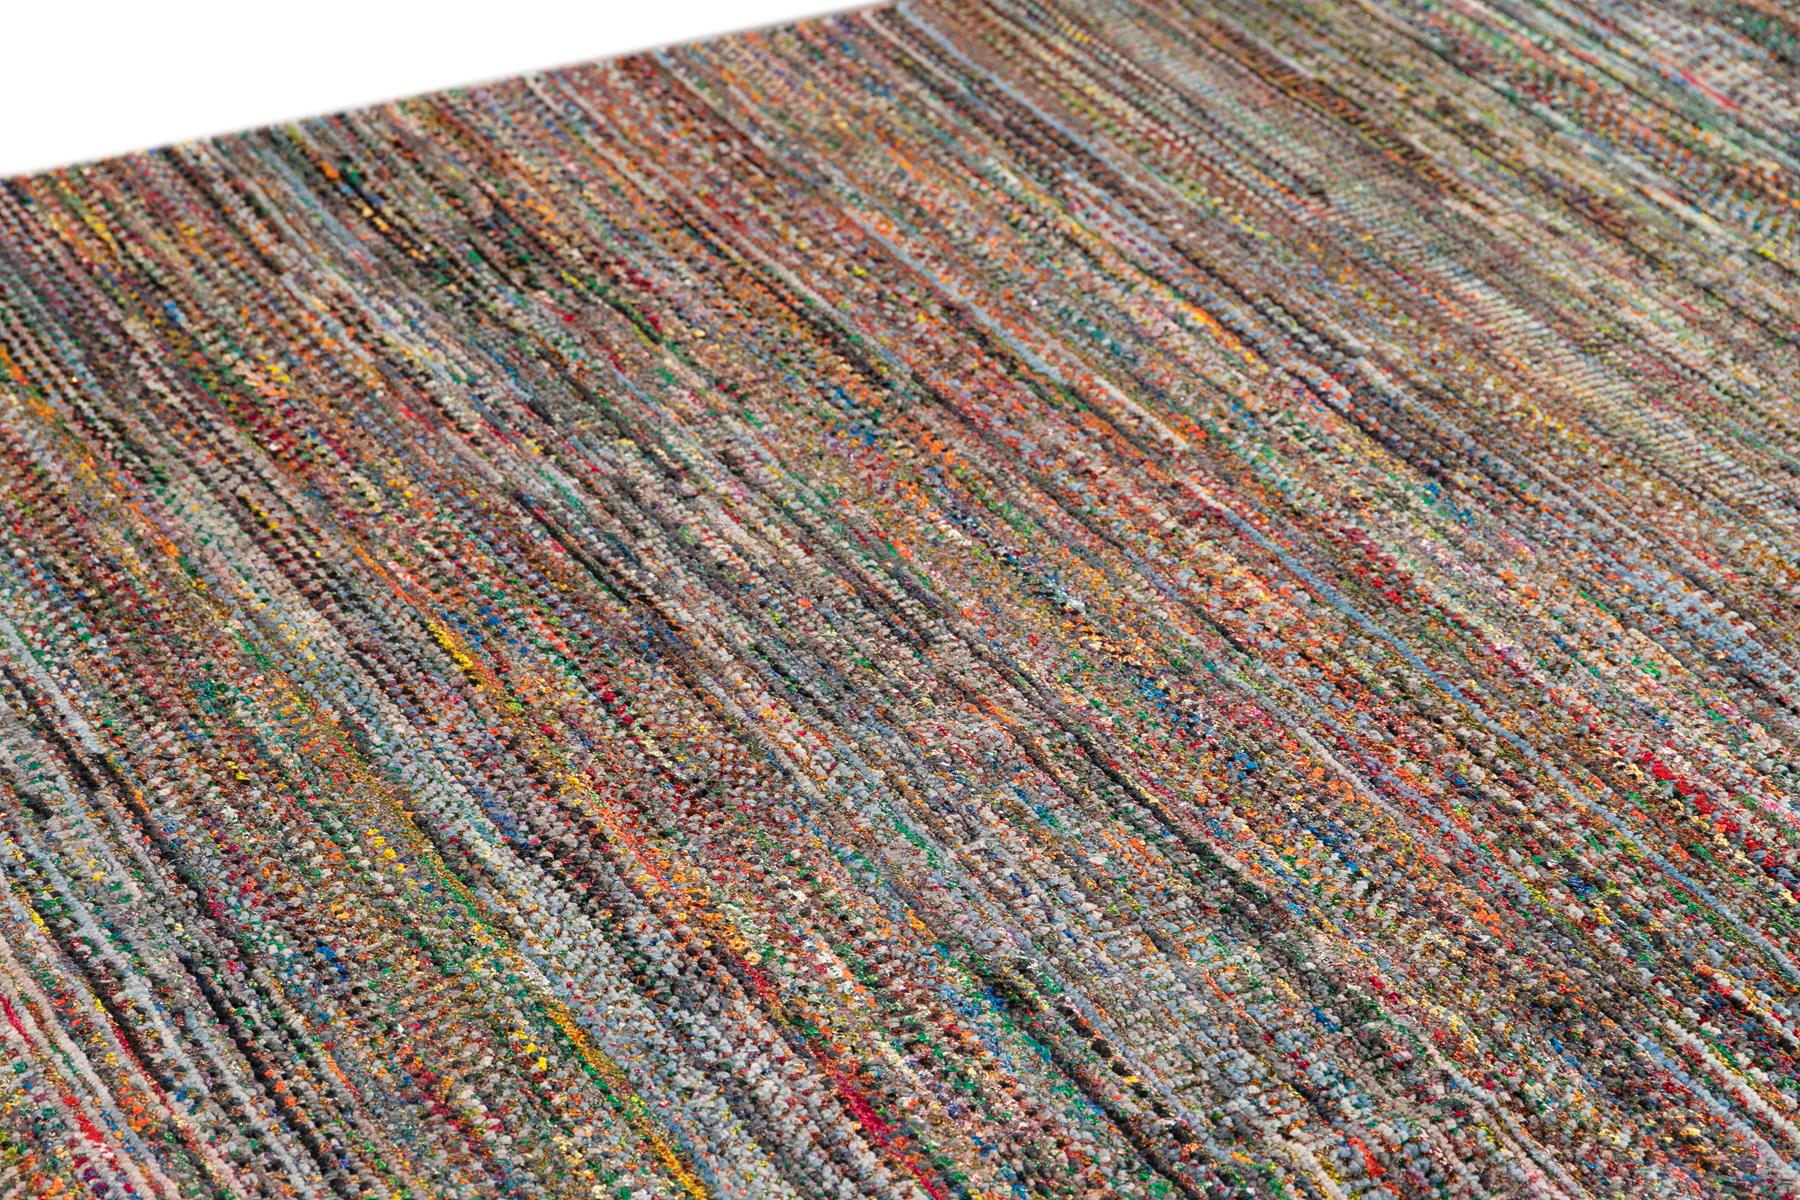 21st Century Striped Sari Silk Rug, 10X14